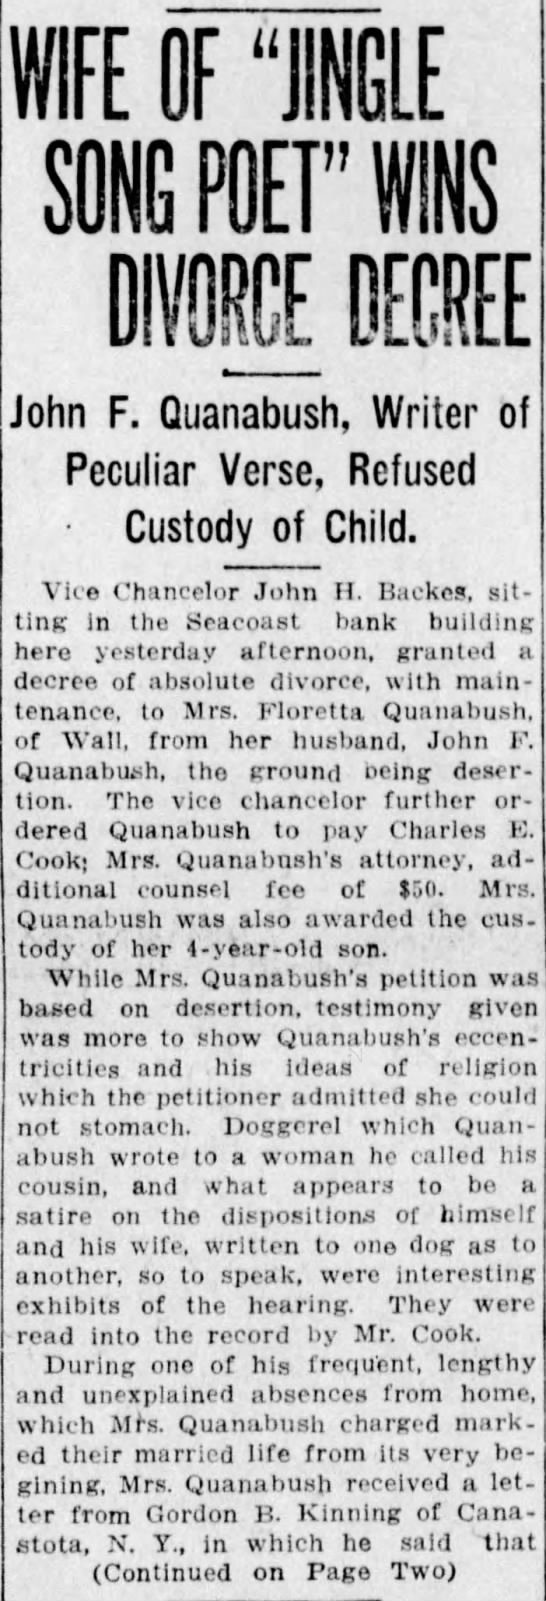 "Published in Asbury Park Press; Saturday, 20 September 1913; Page 1 - WIFE OF ""JINGLE SONG POET"" WINS DIKE DECREE..."